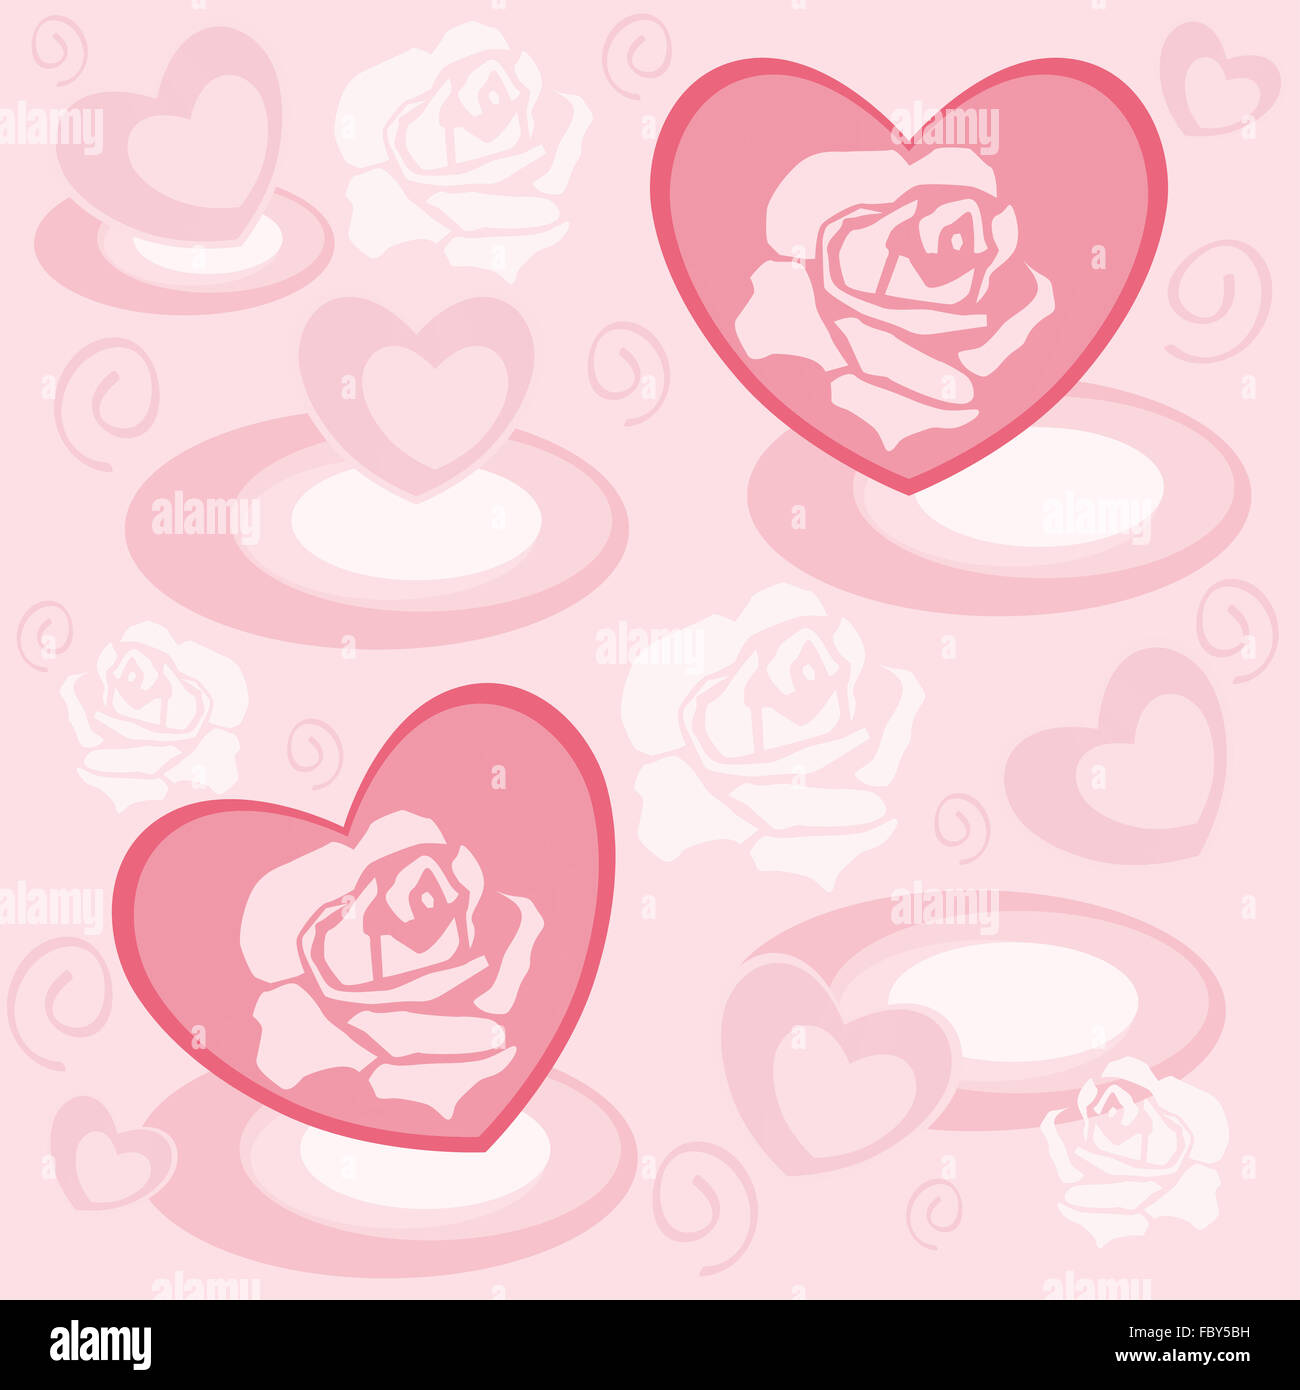 Heart with rose petals Stock Photo